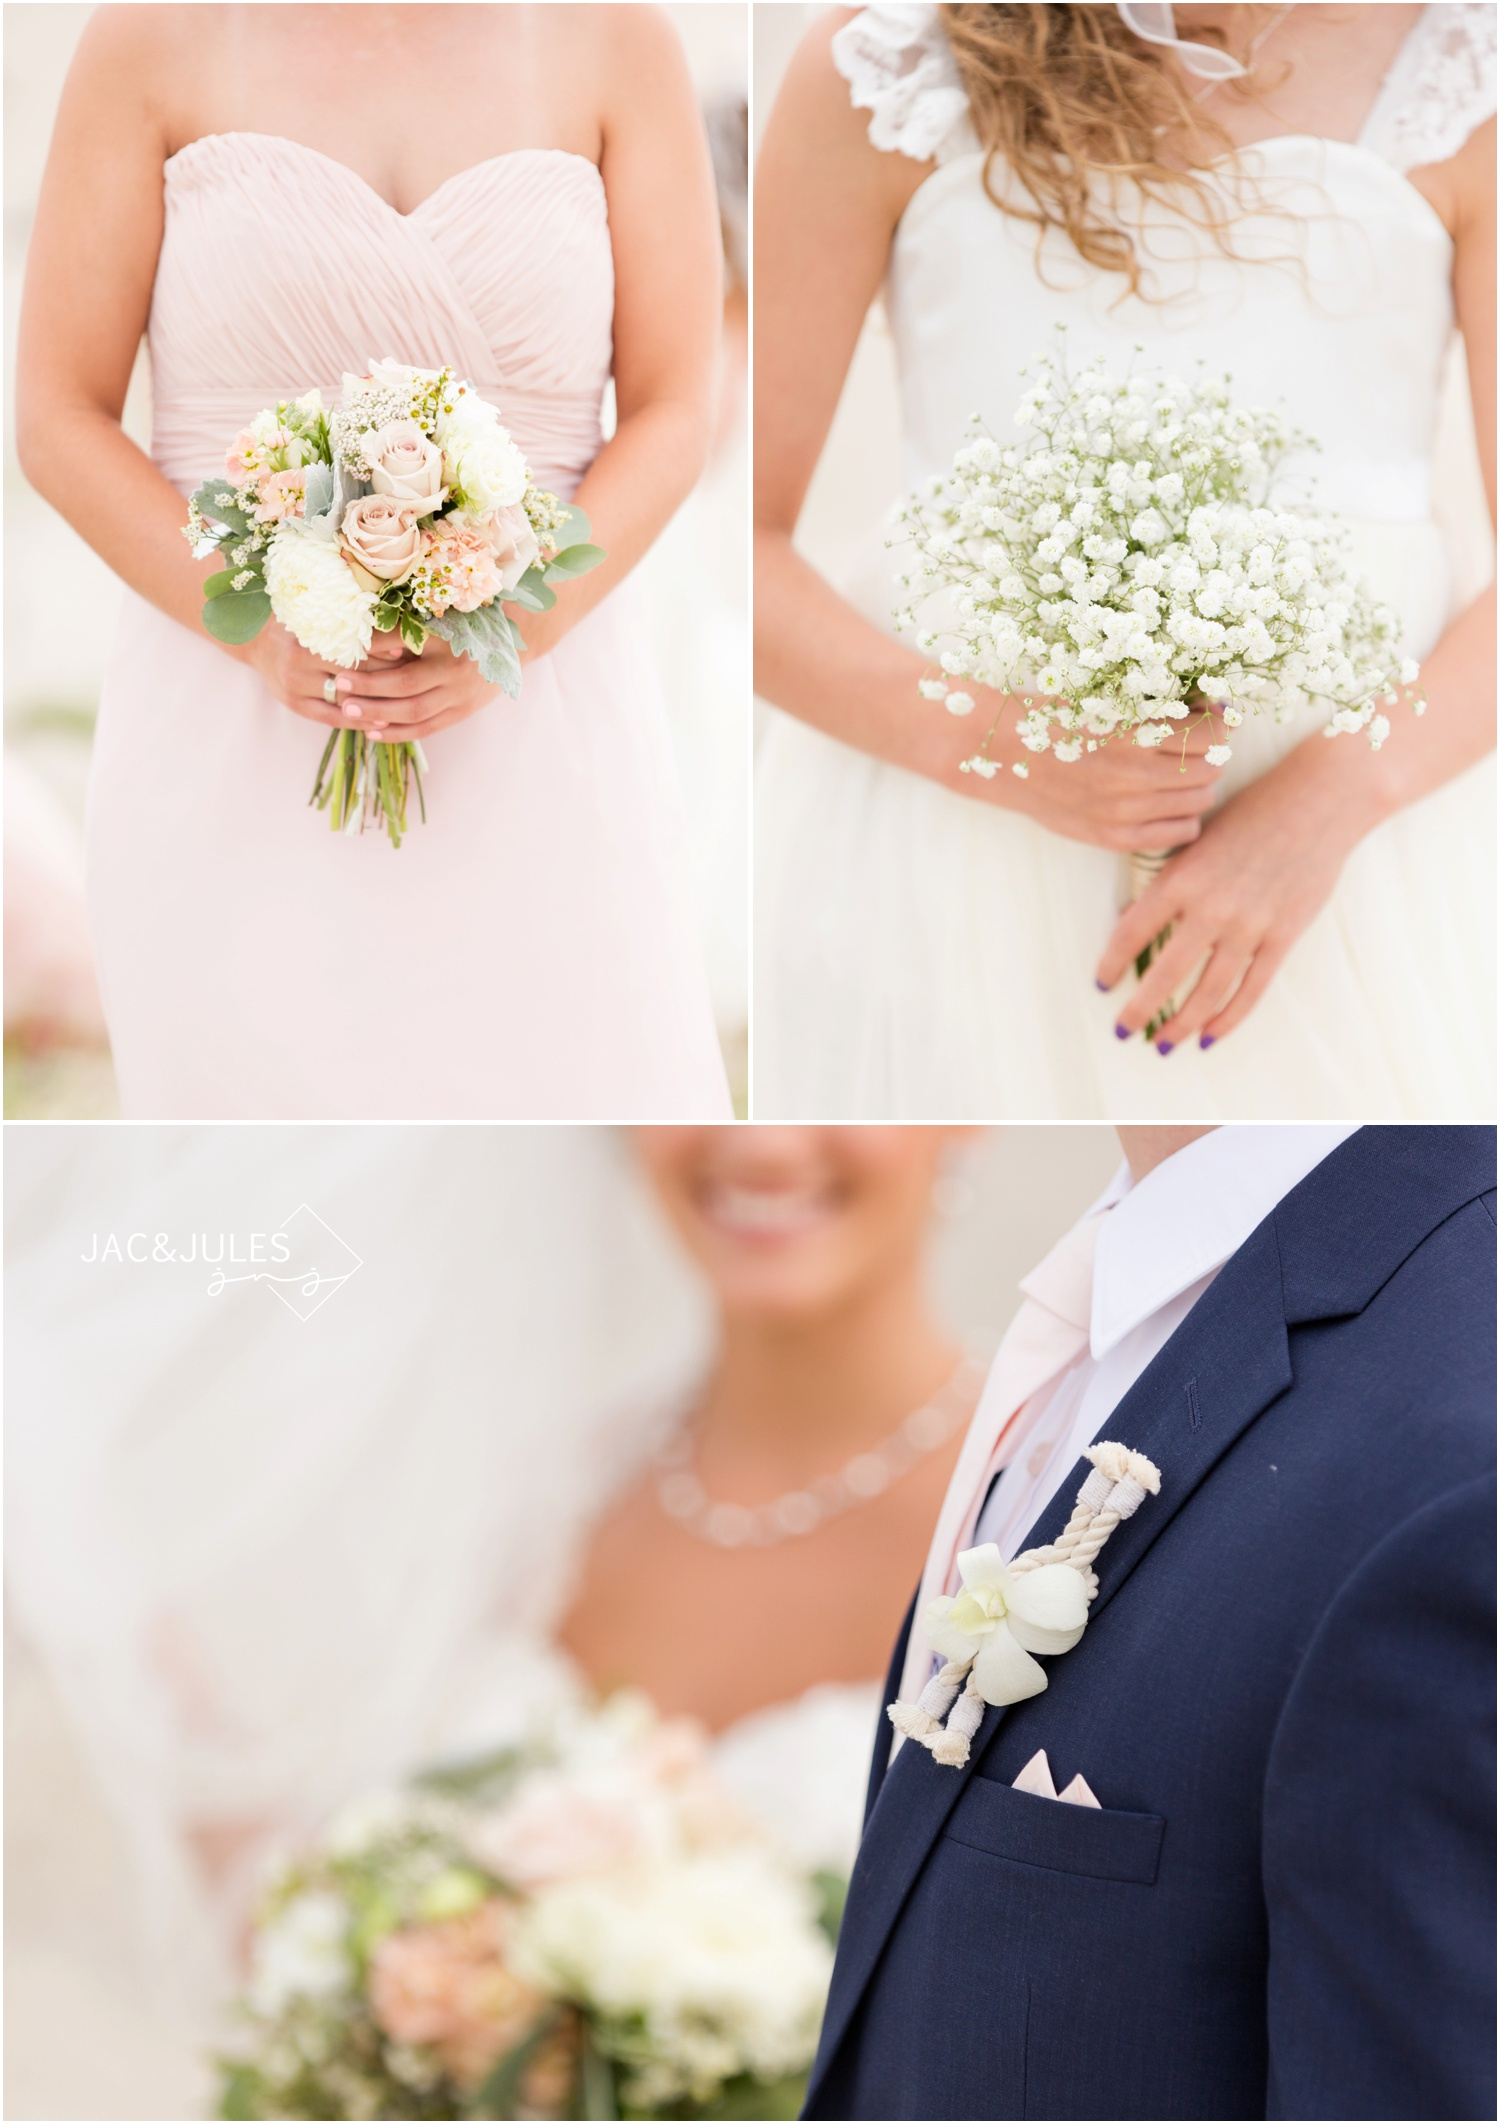 Bridesmaid and flower girl bouquets, groom's nautical boutineer